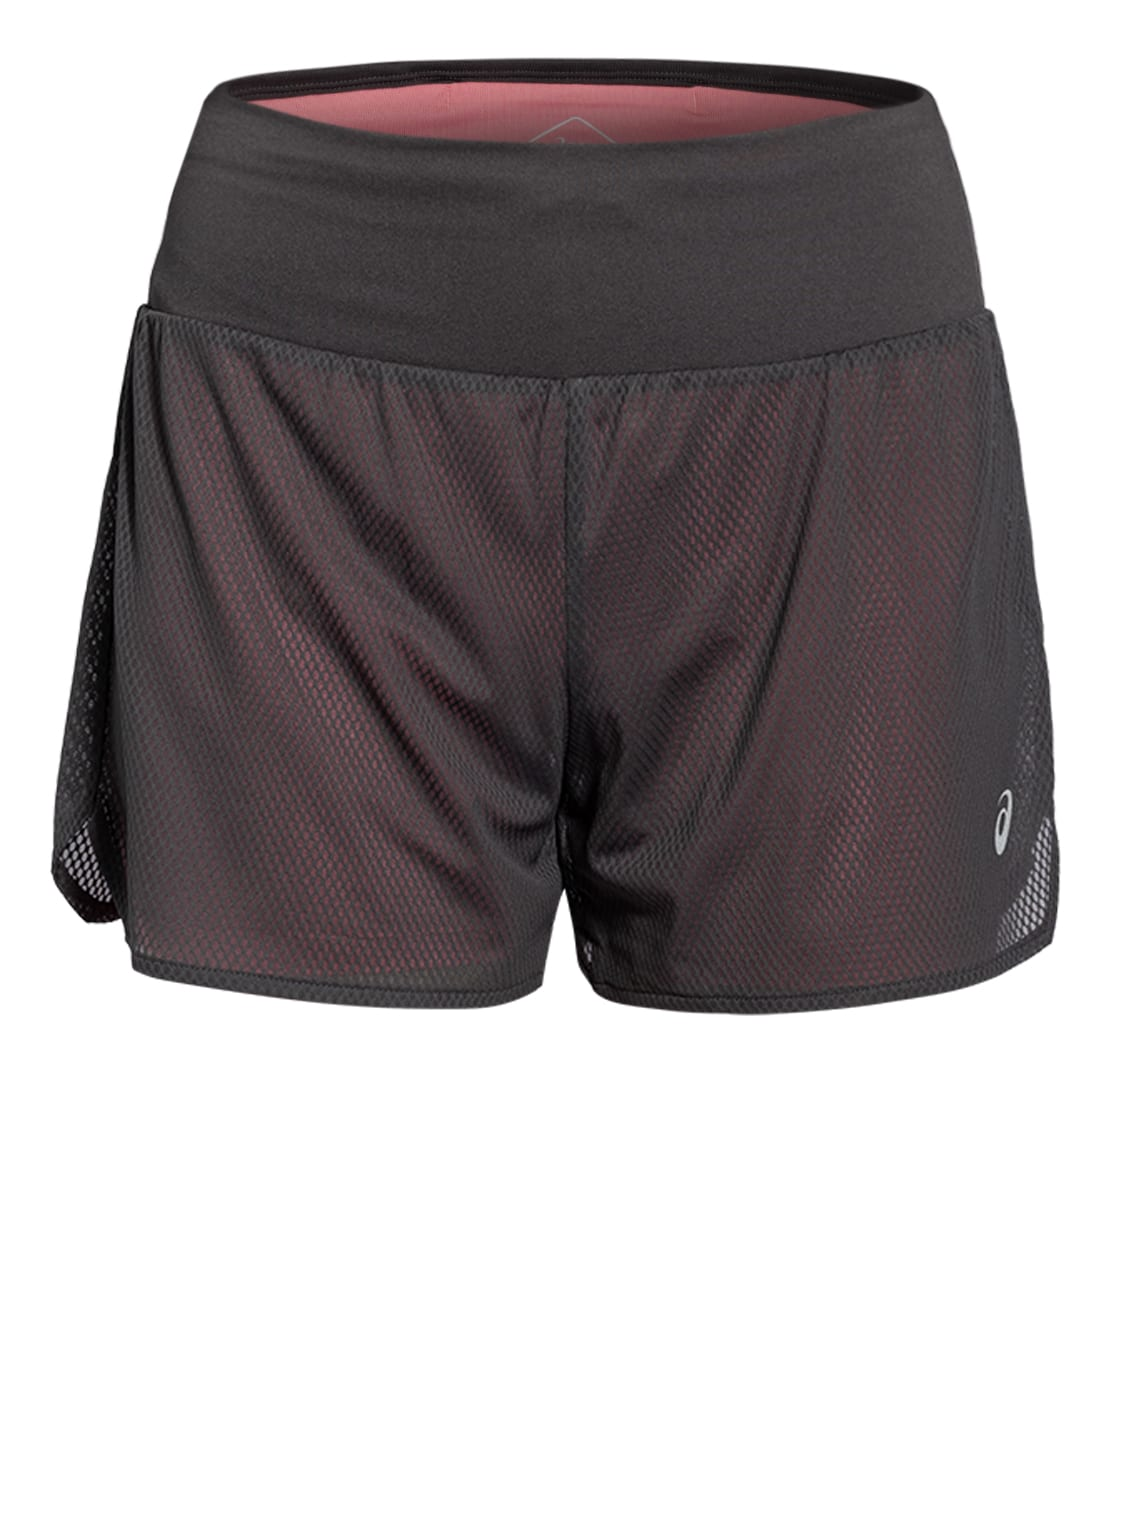 Image of Asics 2-In-1-Laufshorts Ventilate grau